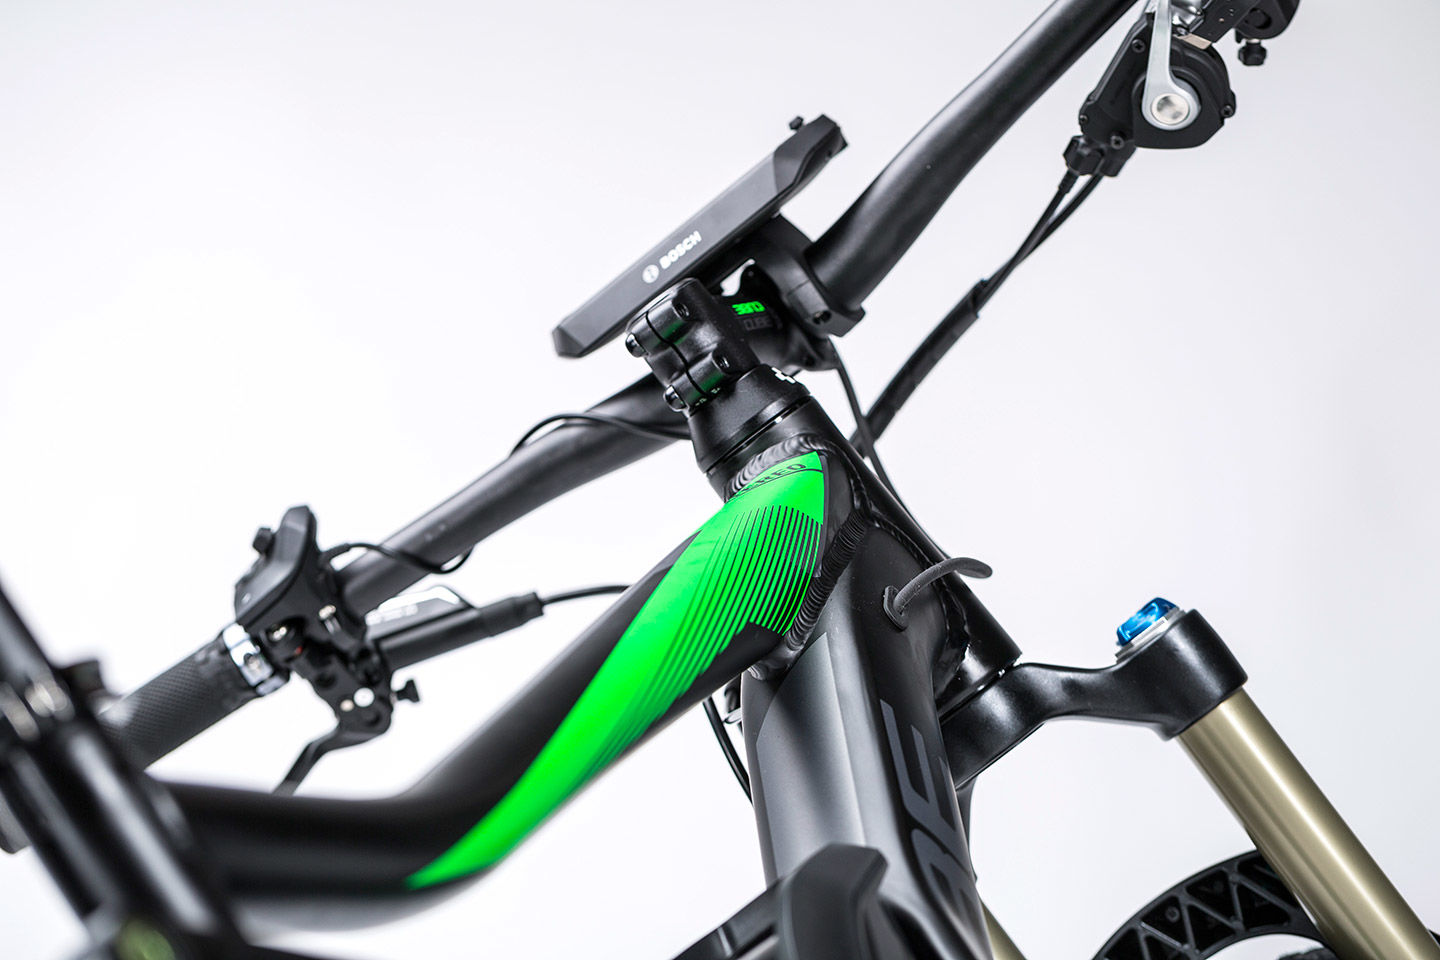 Cube Stereo Hybrid 120 Hpa Race Nyon 29 2015 Review The